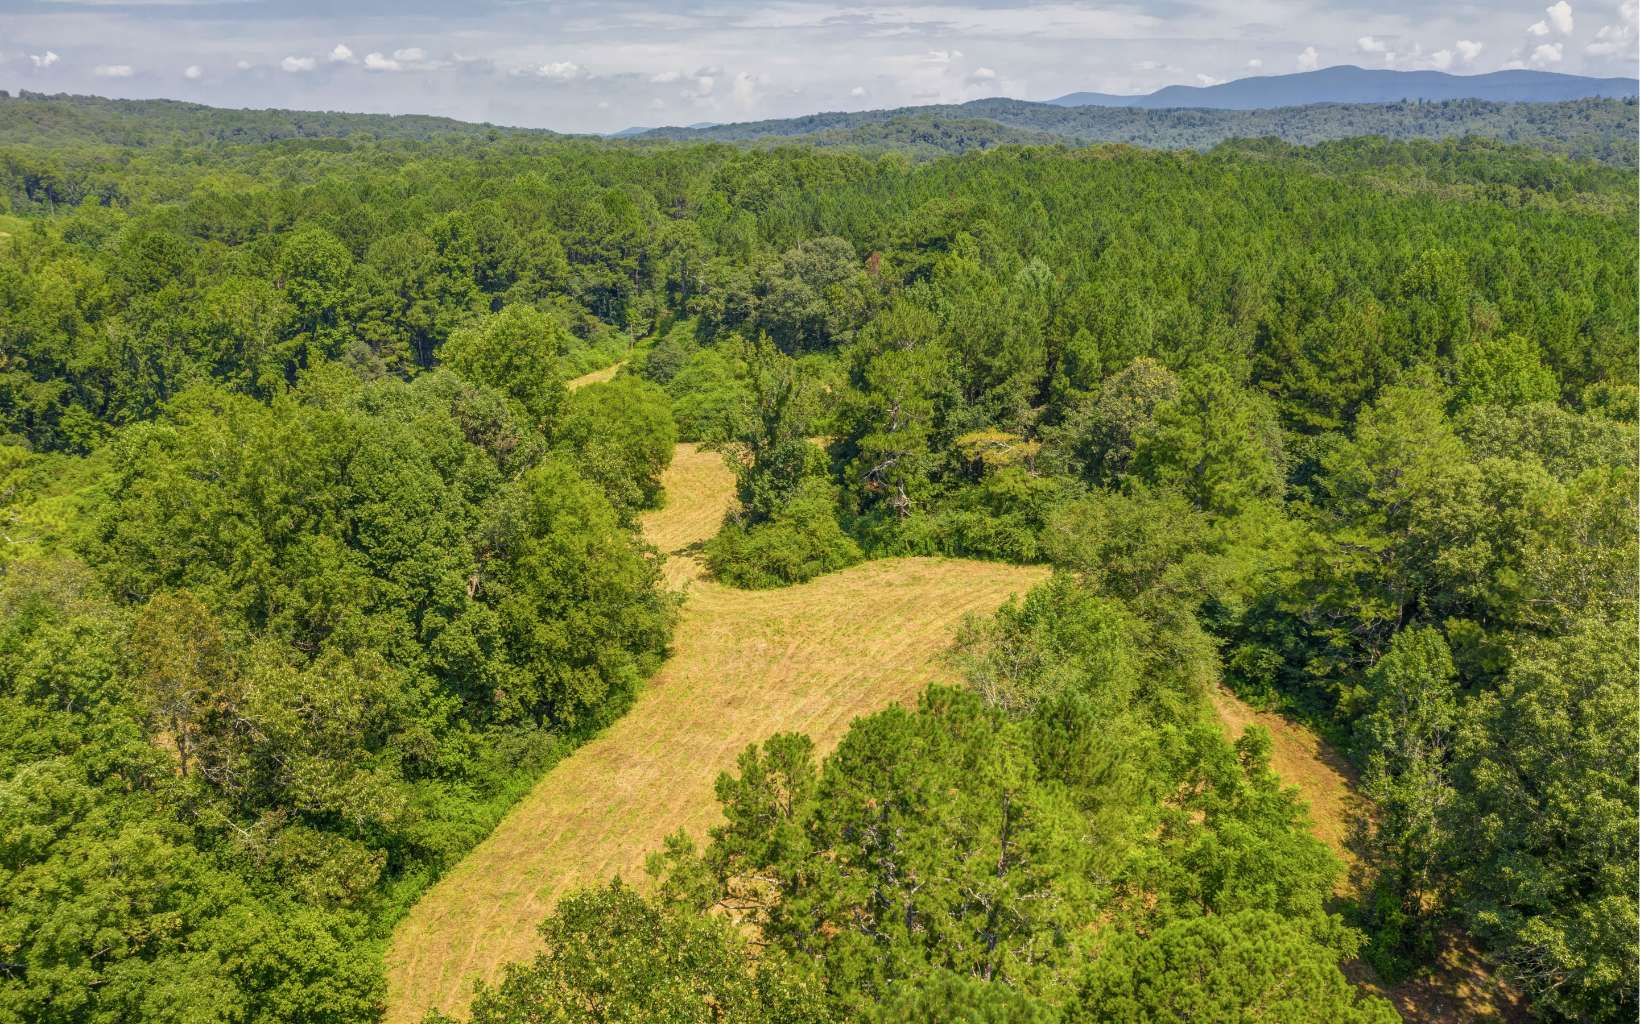 MLS #290623 - Beautiful 26 46 acre land would make an amazing horse